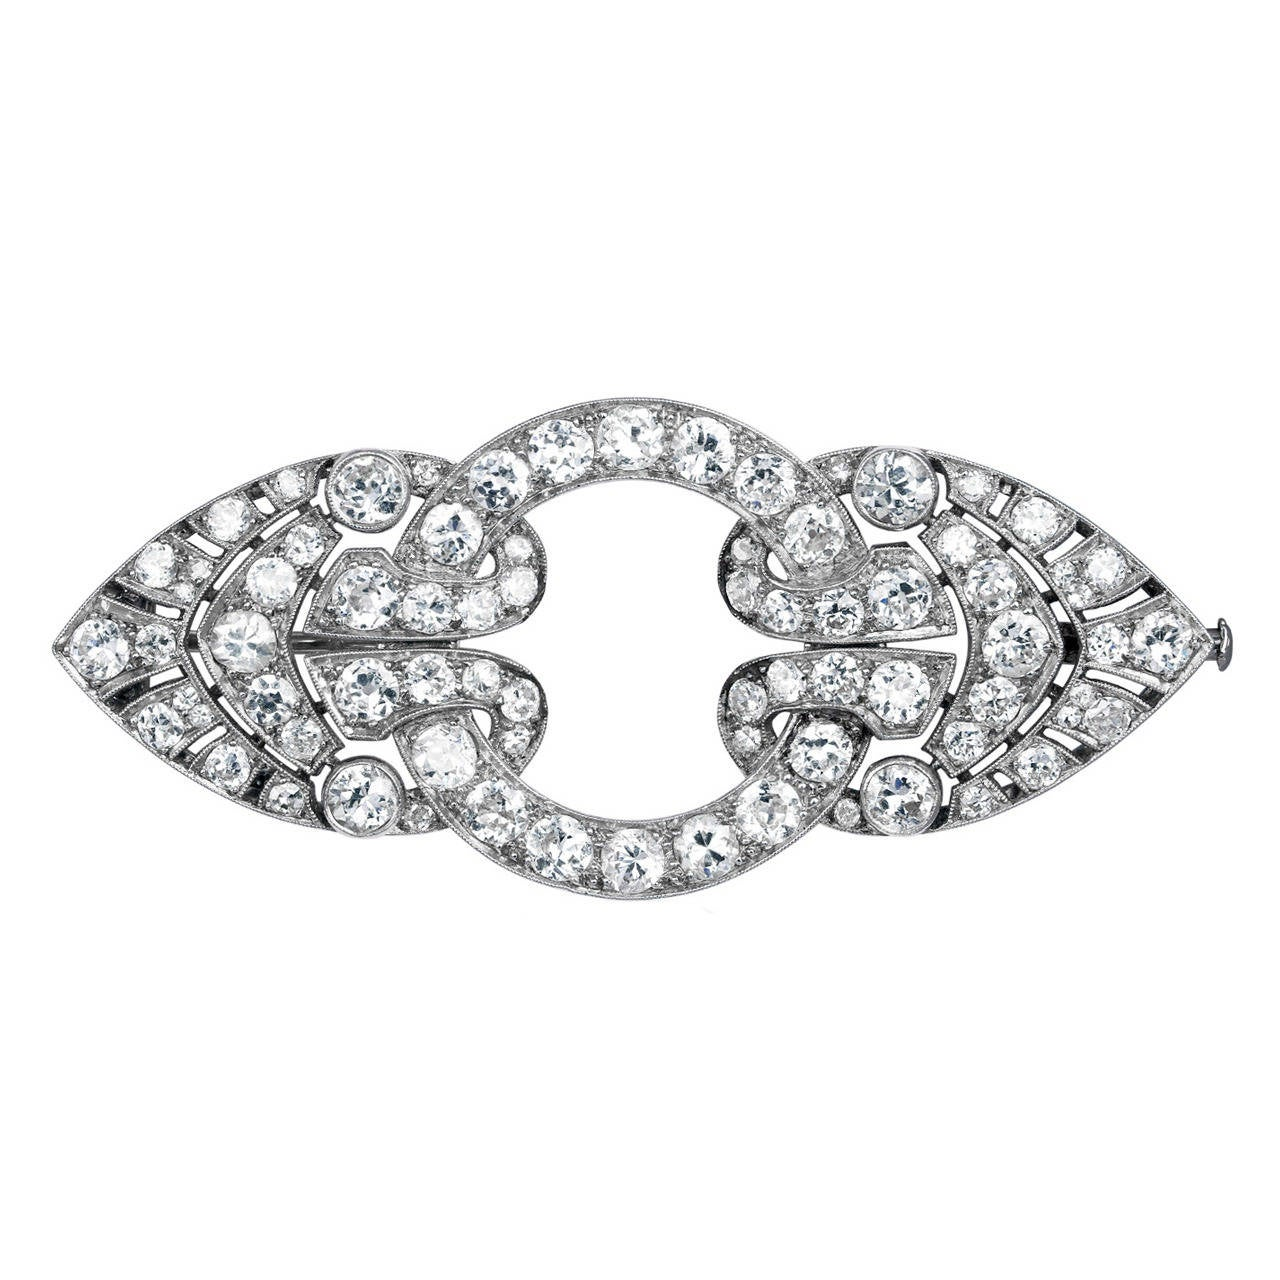 Art Deco 6 Carat Diamond Platinum Brooch